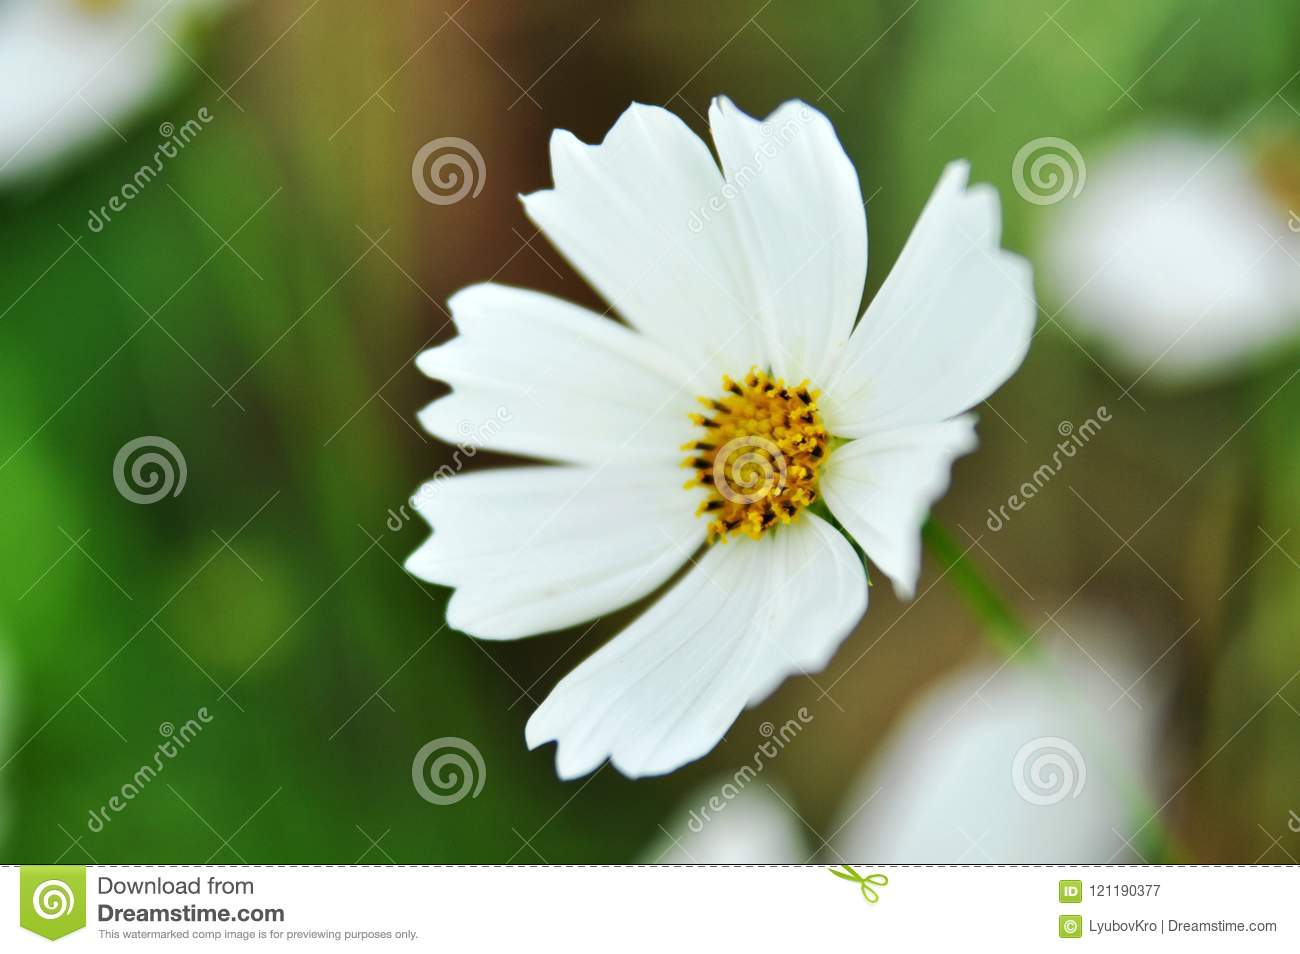 White Flower With Yellow Center In The Garden With Blurred